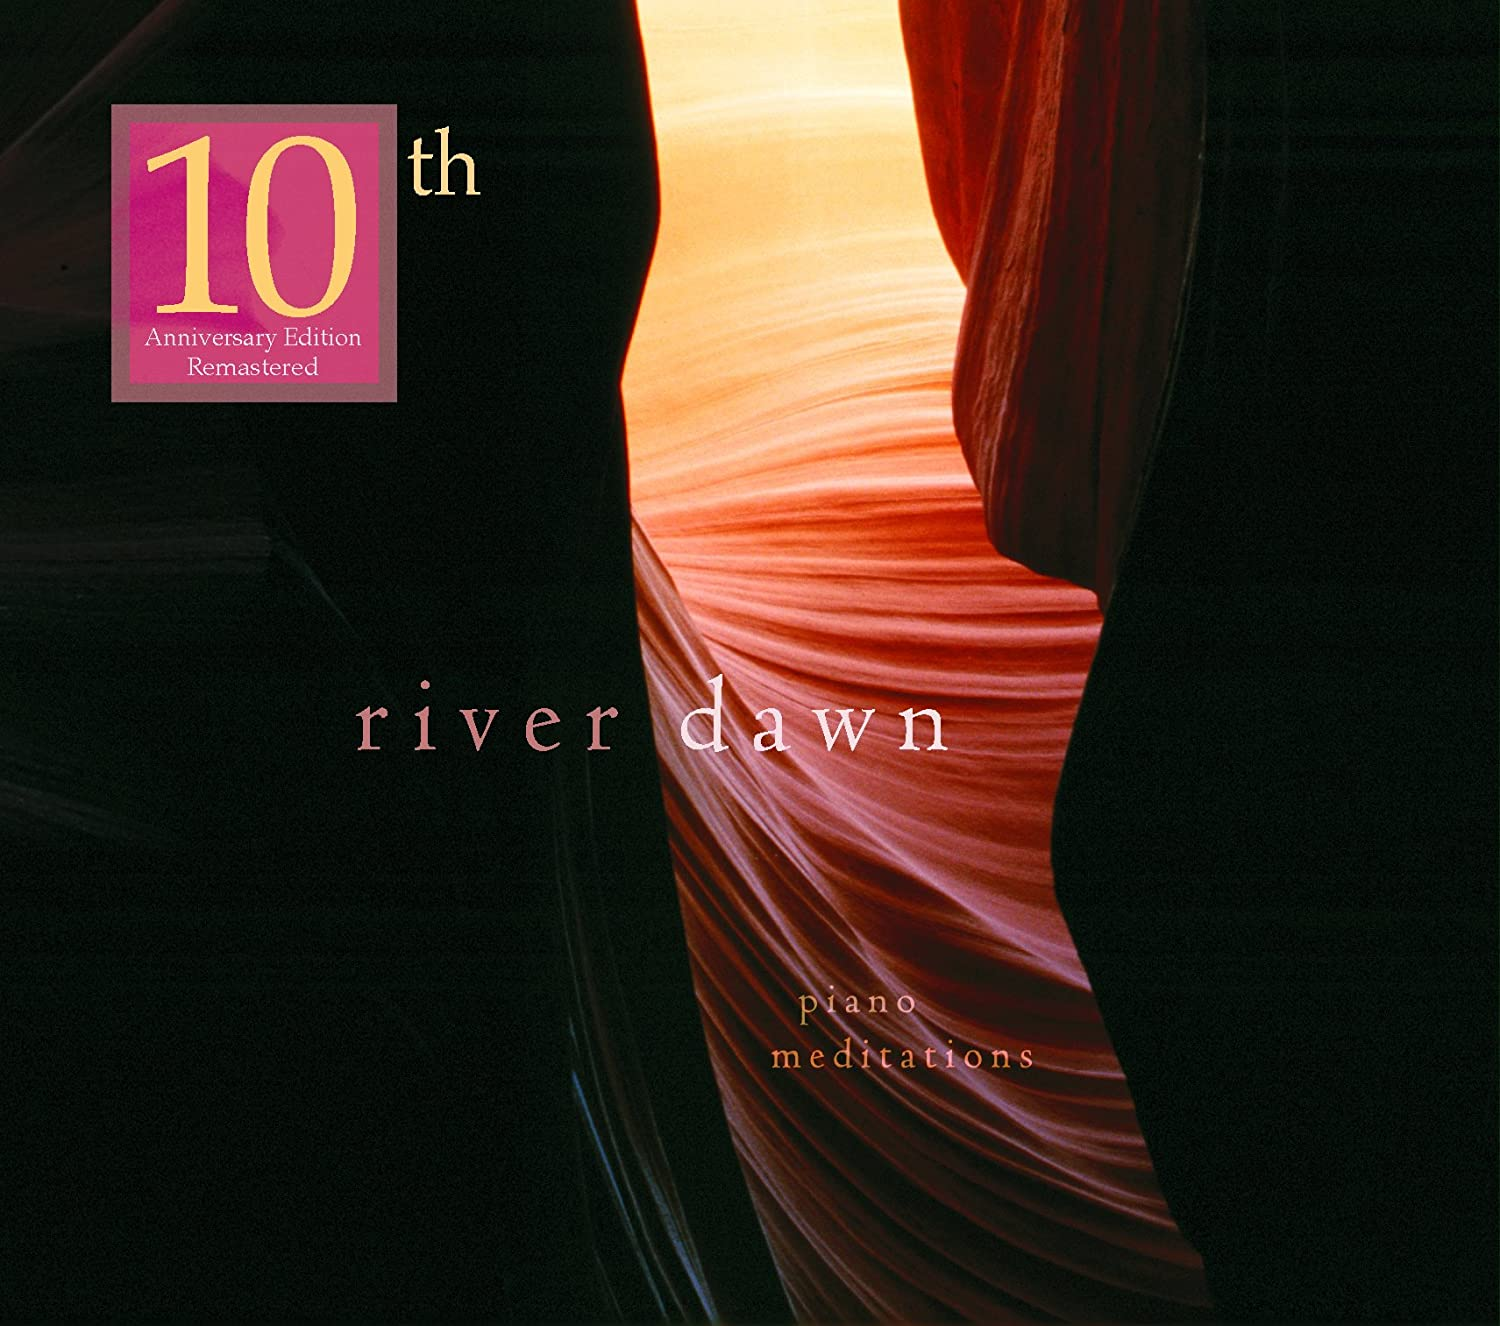 River Dawn: Bargain sale Meditations Piano All items free shipping